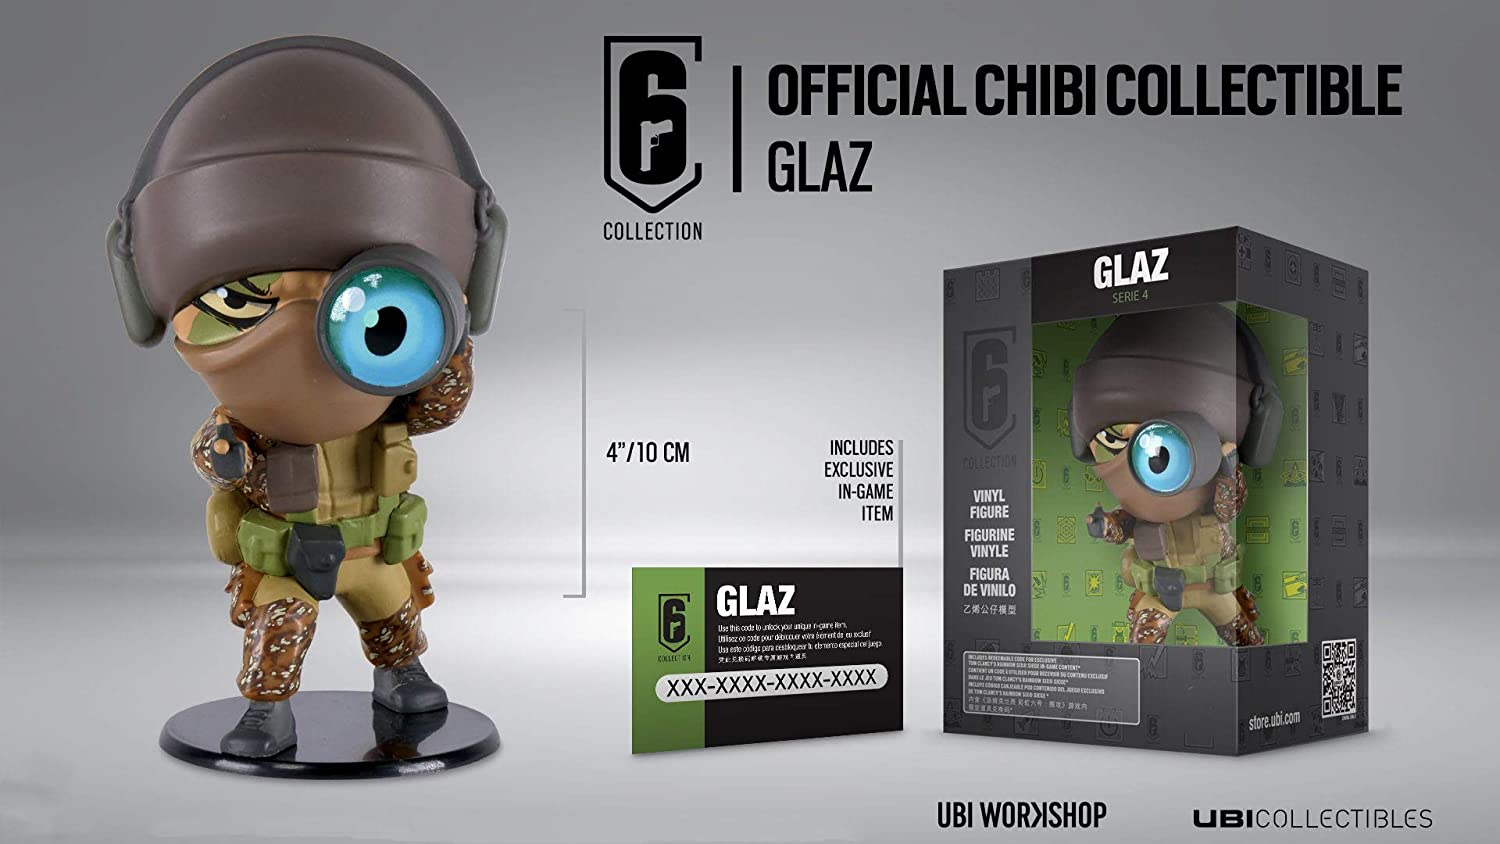 Rainbow Six Siege Collection Figurine Series 4 Glaz Chibi